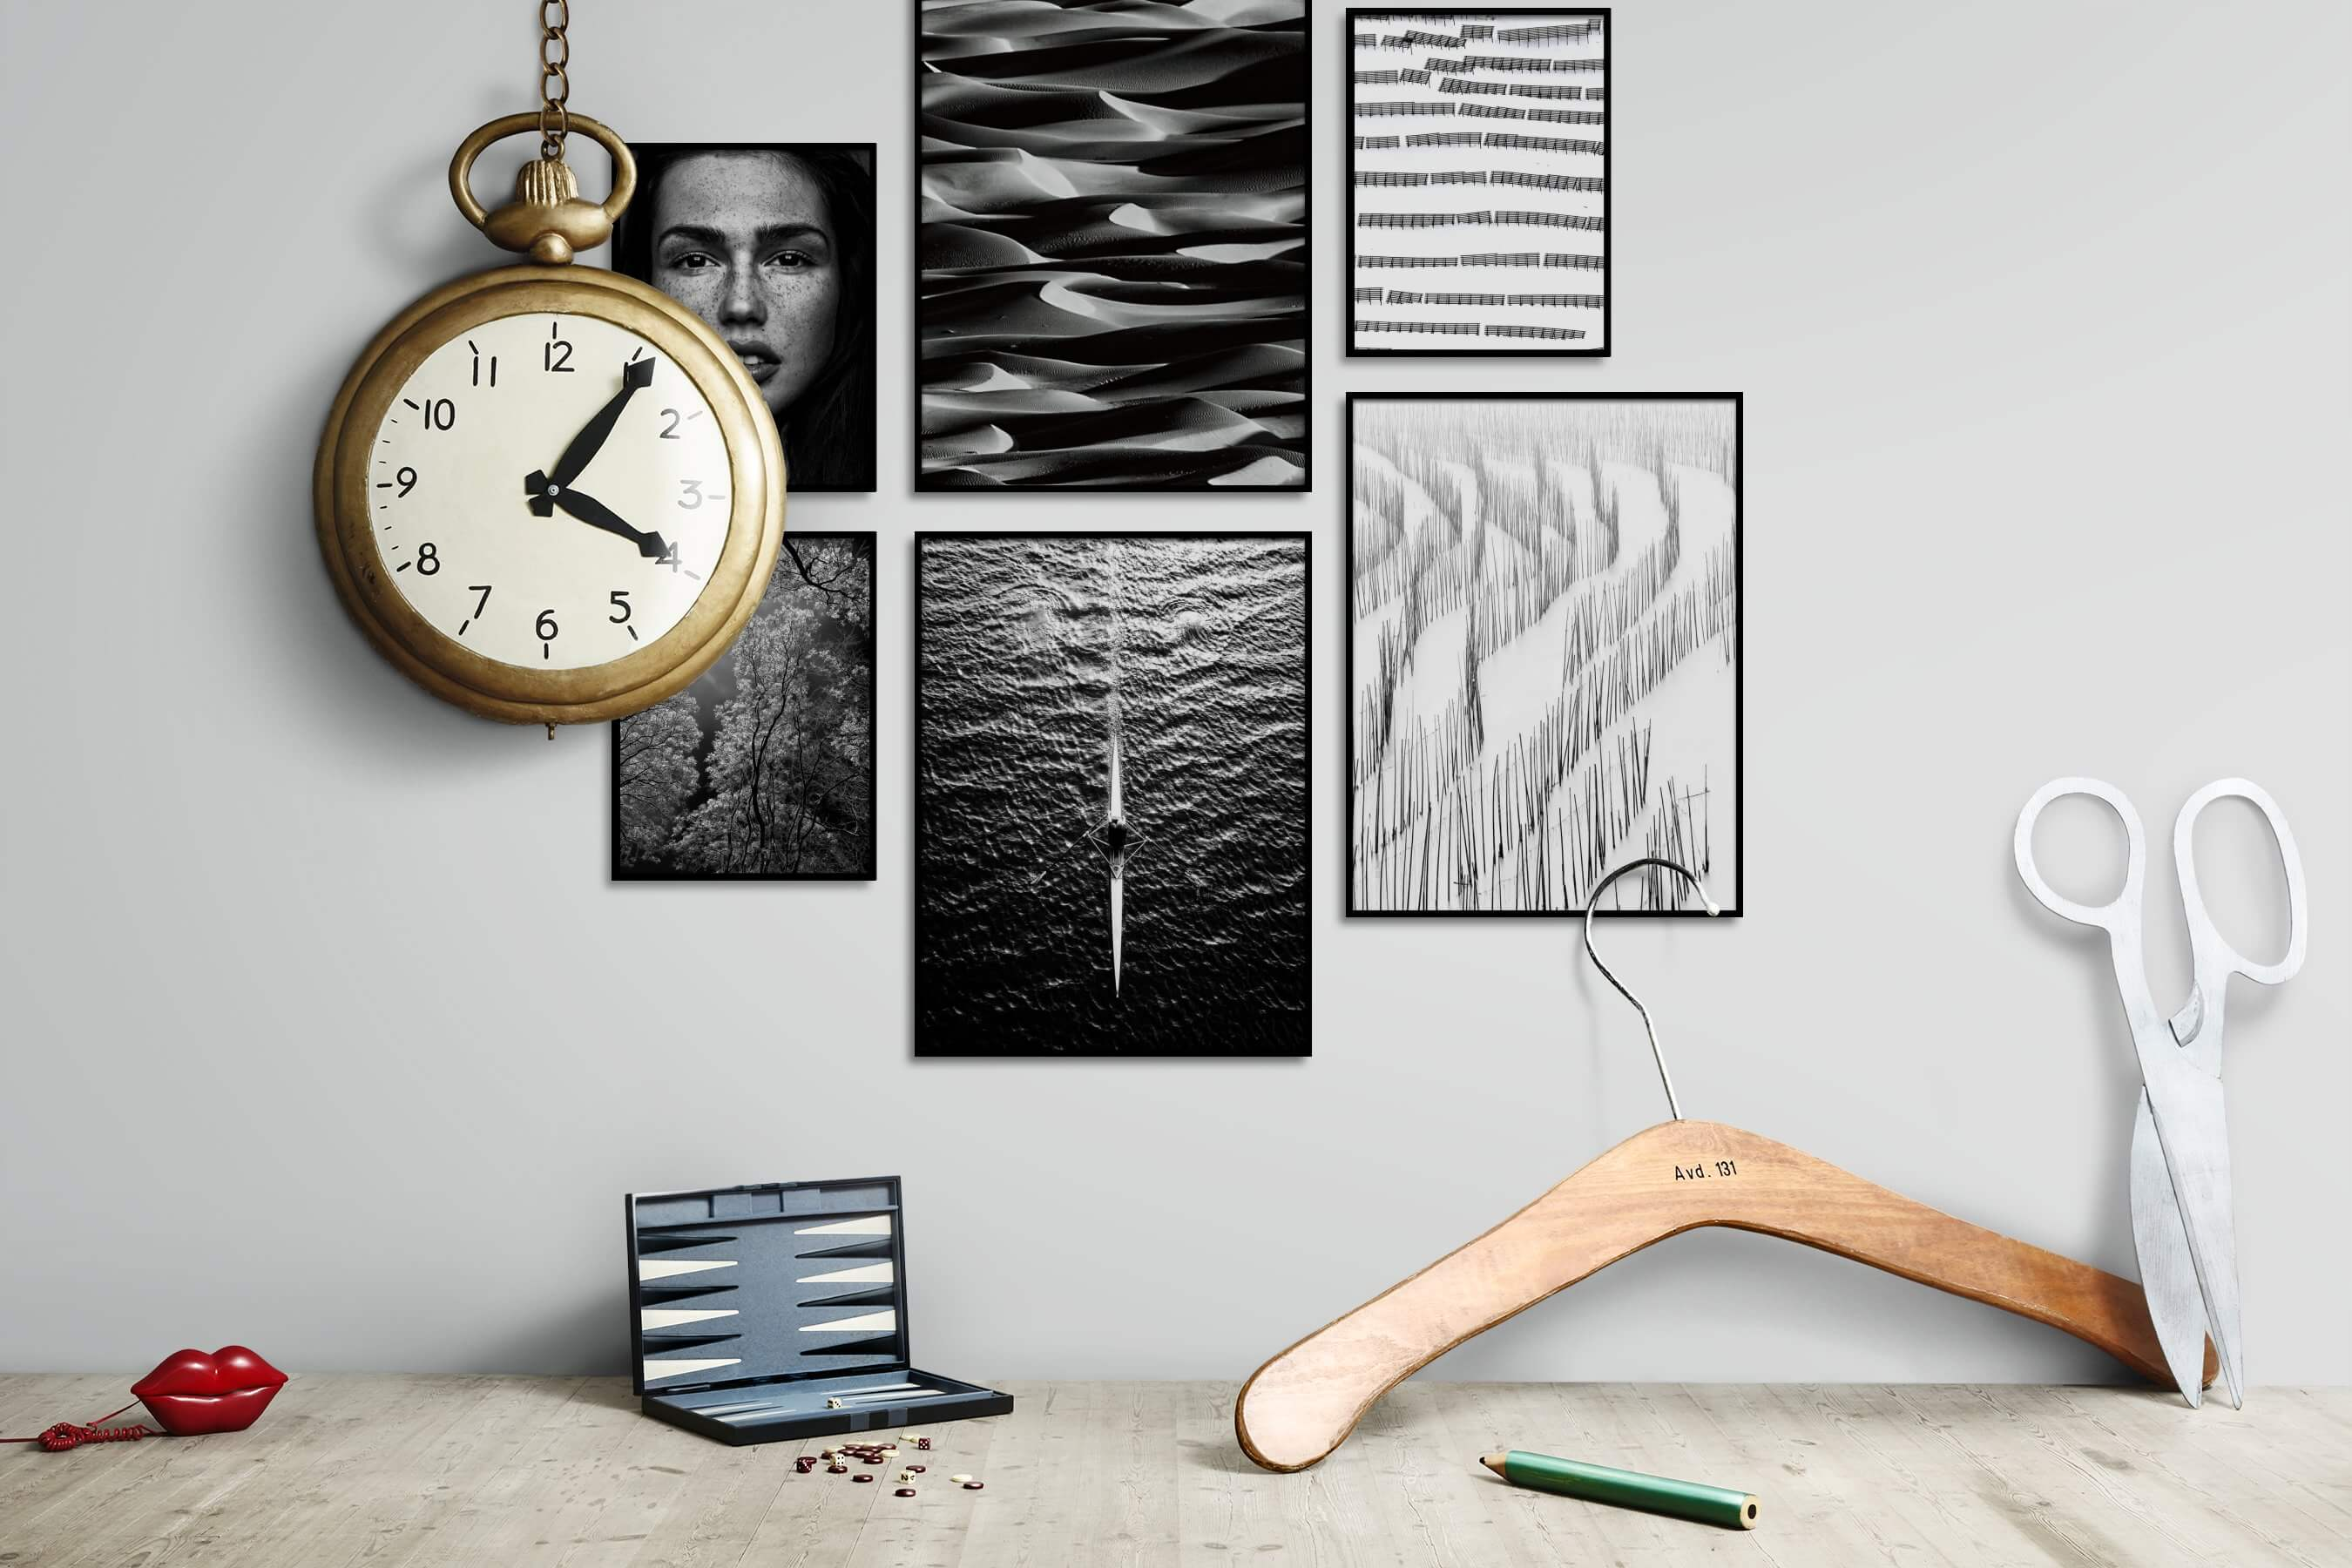 Gallery wall idea with six framed pictures arranged on a wall depicting Fashion & Beauty, Black & White, Dark Tones, For the Maximalist, Nature, For the Moderate, and Beach & Water